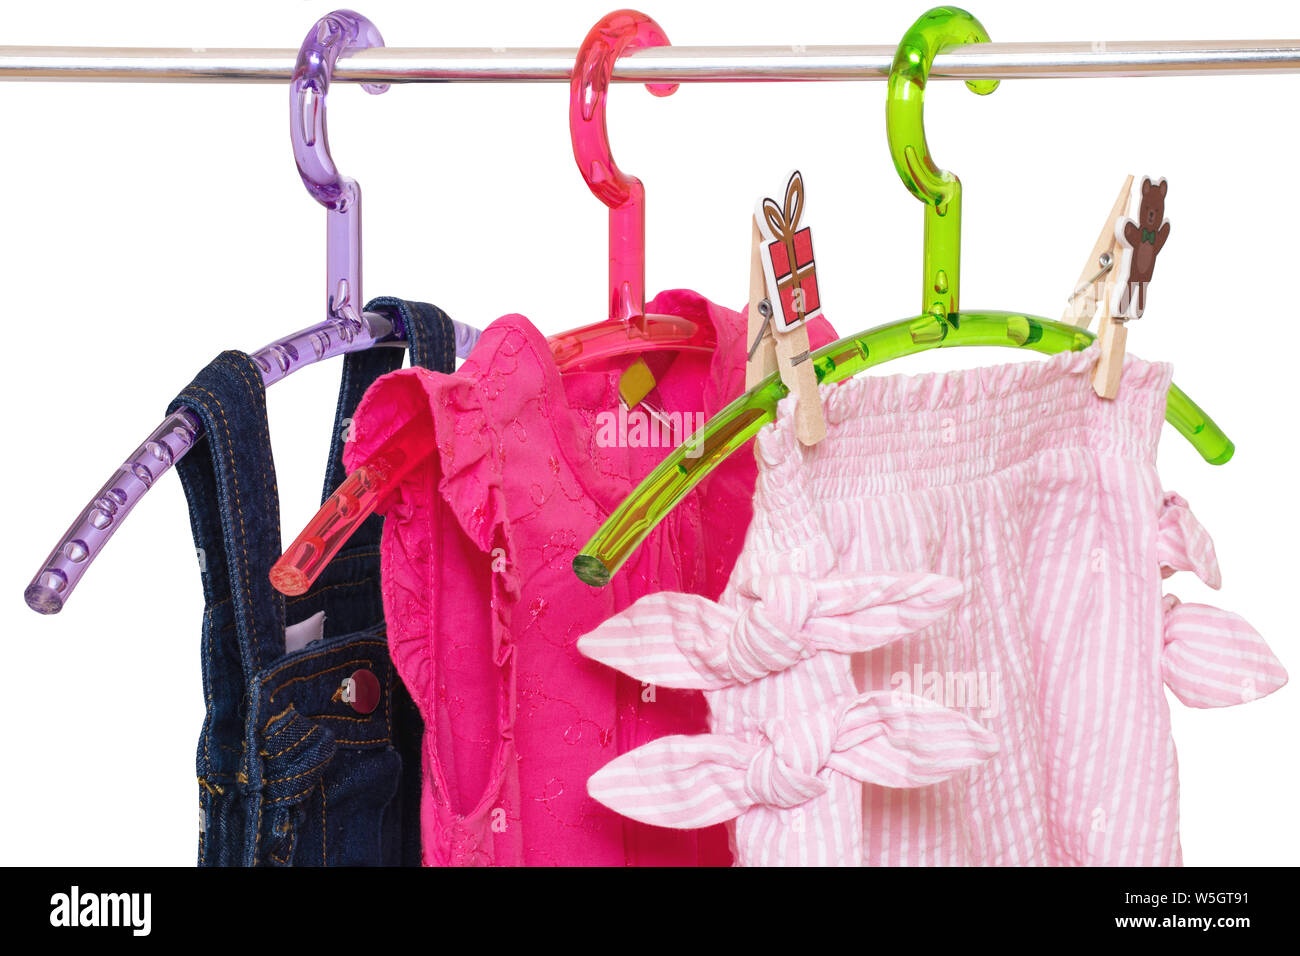 Girls clothes on rack. Close-up of colorful stylish summer dresses and a short pants for the little girl on a rack isolated on a white background. Clo Stock Photo